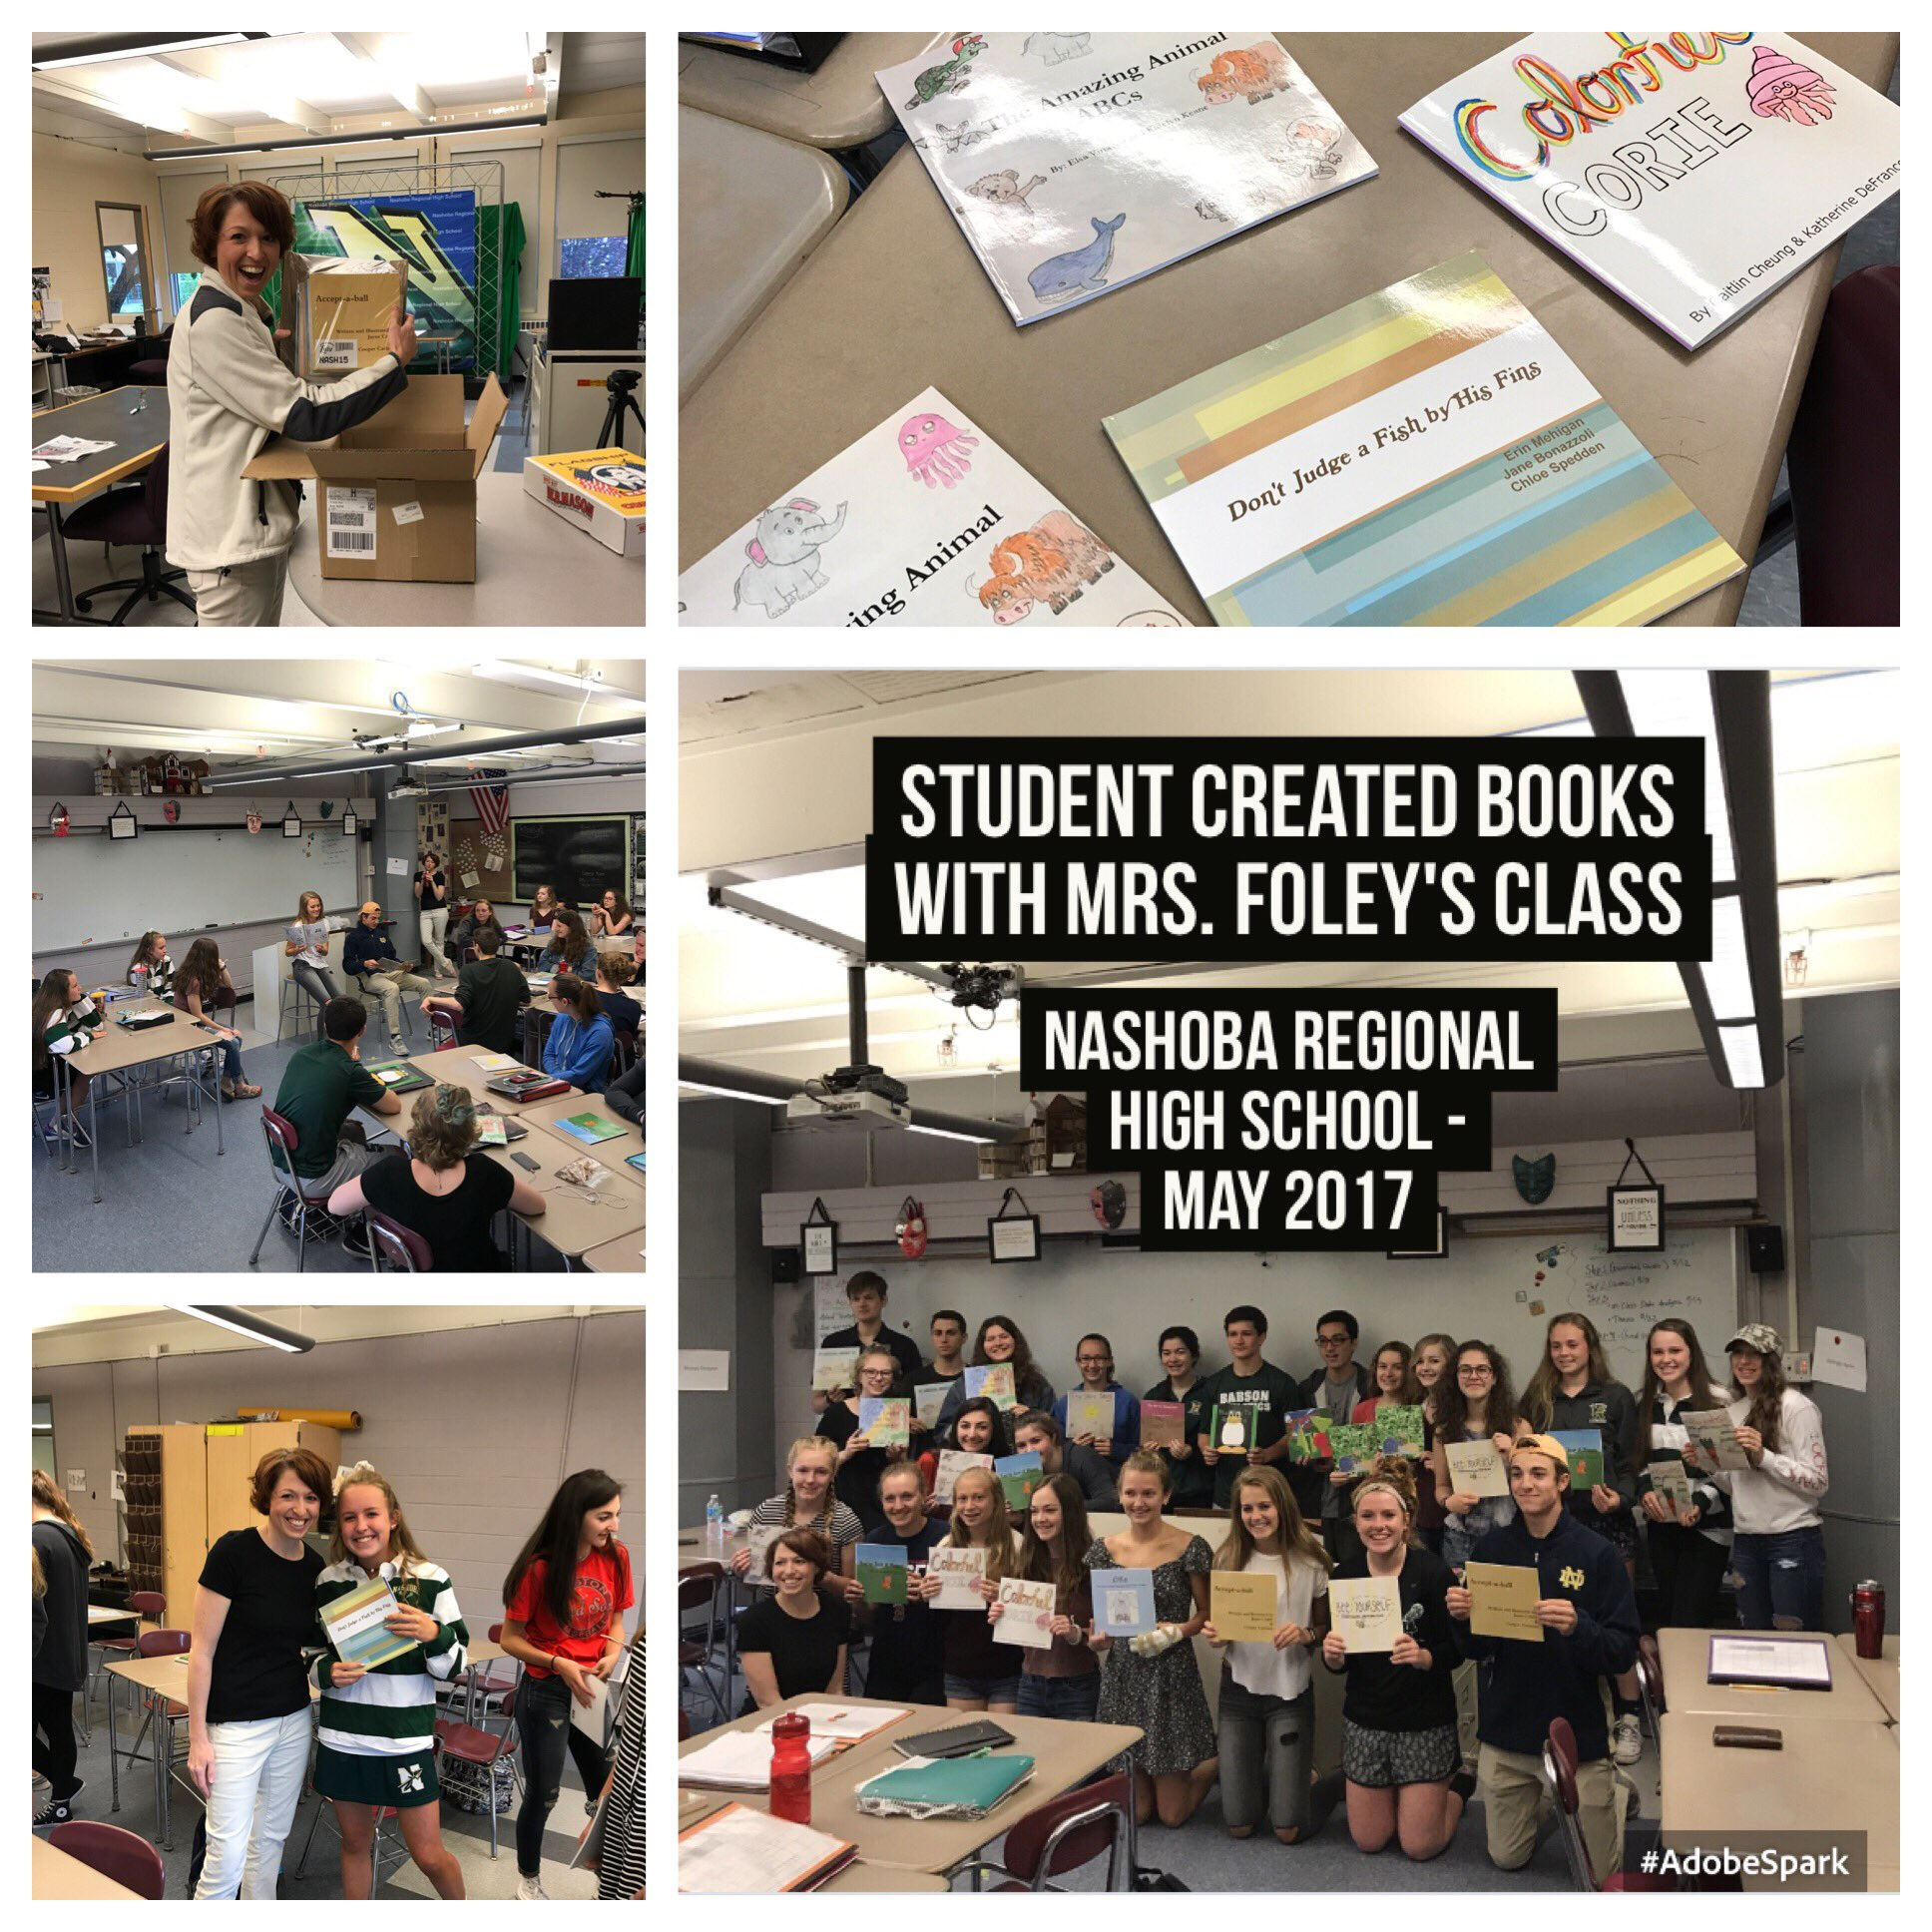 Students published books have arrived! Students reading their books to each other! @FoleyProcko love the creativity #PBL https://t.co/Cb7DYKgjDN